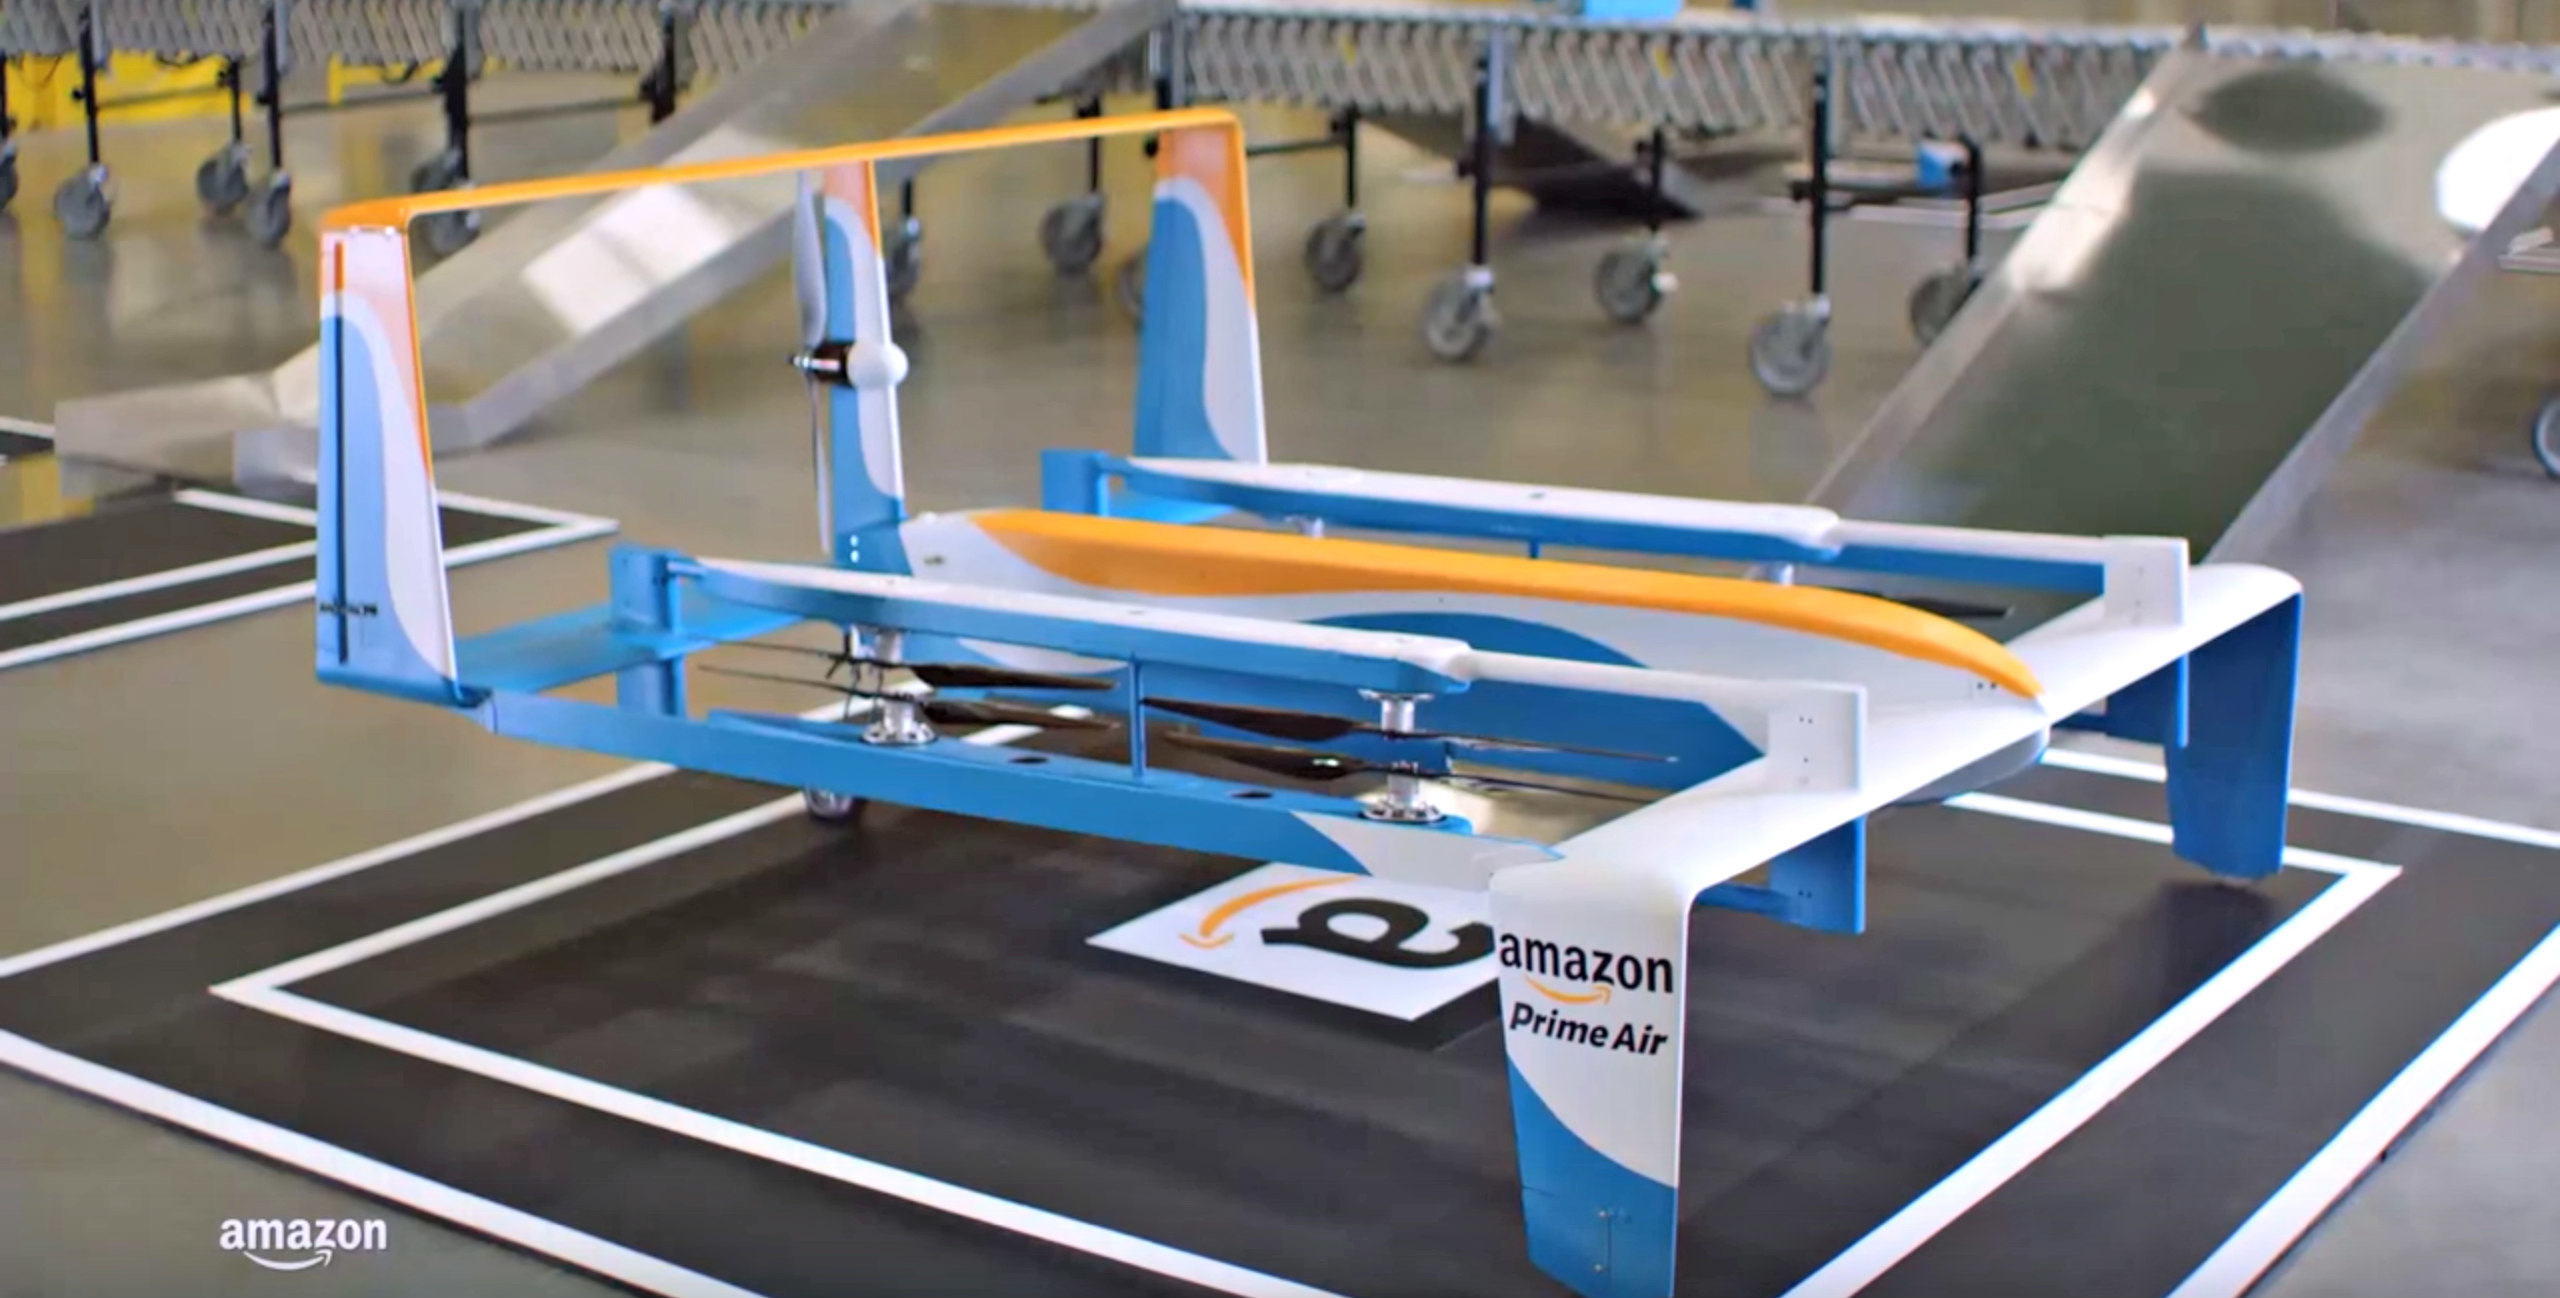 Jeremy Clarkson unveils new Amazon delivery drone